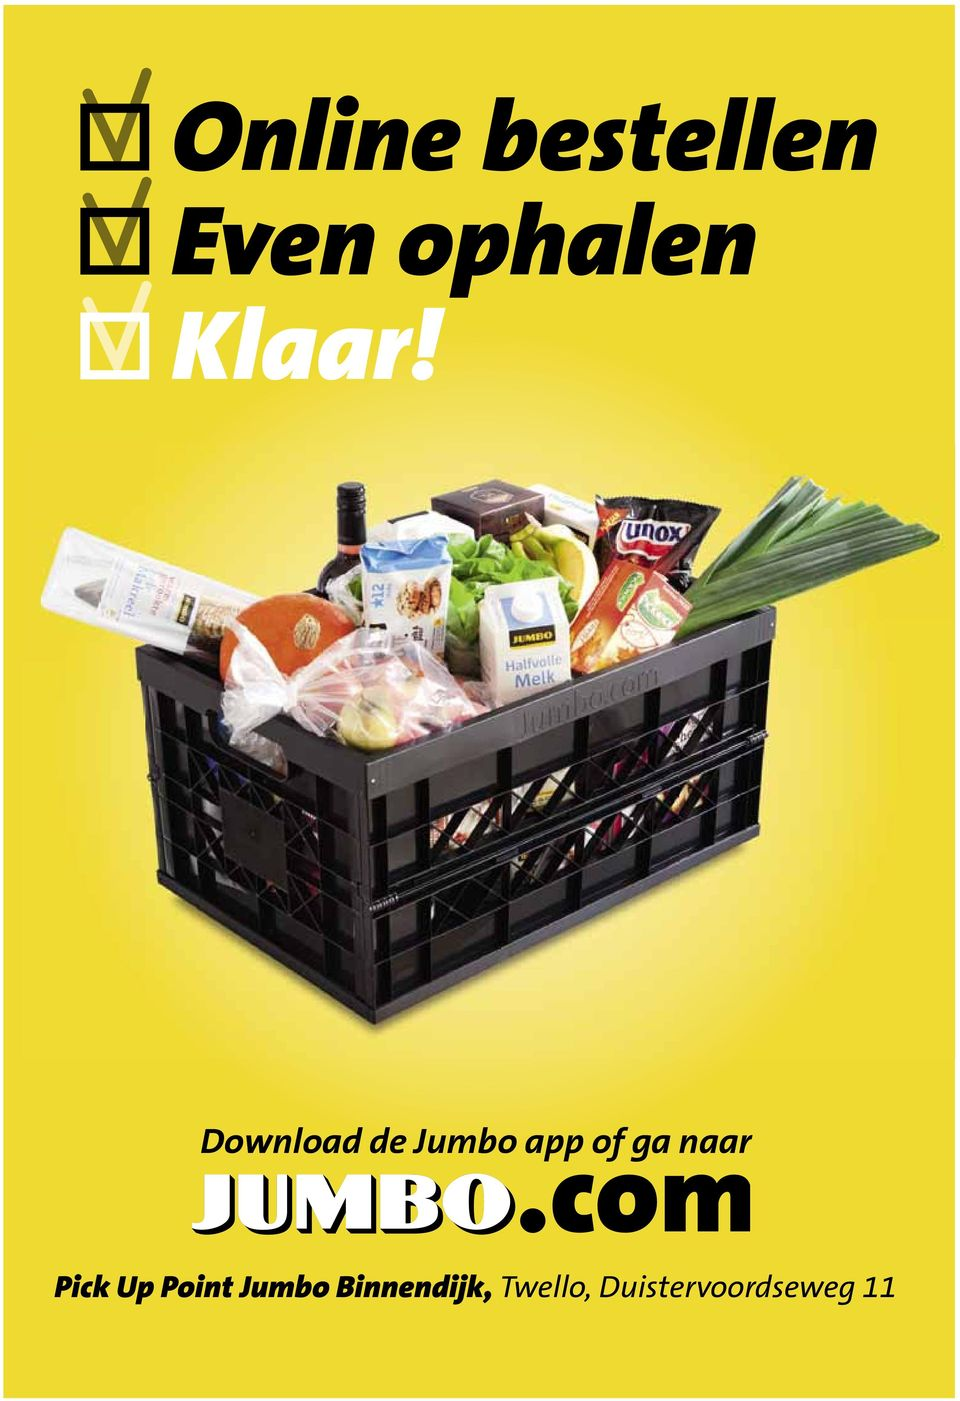 Download de Jumbo app of ga naar